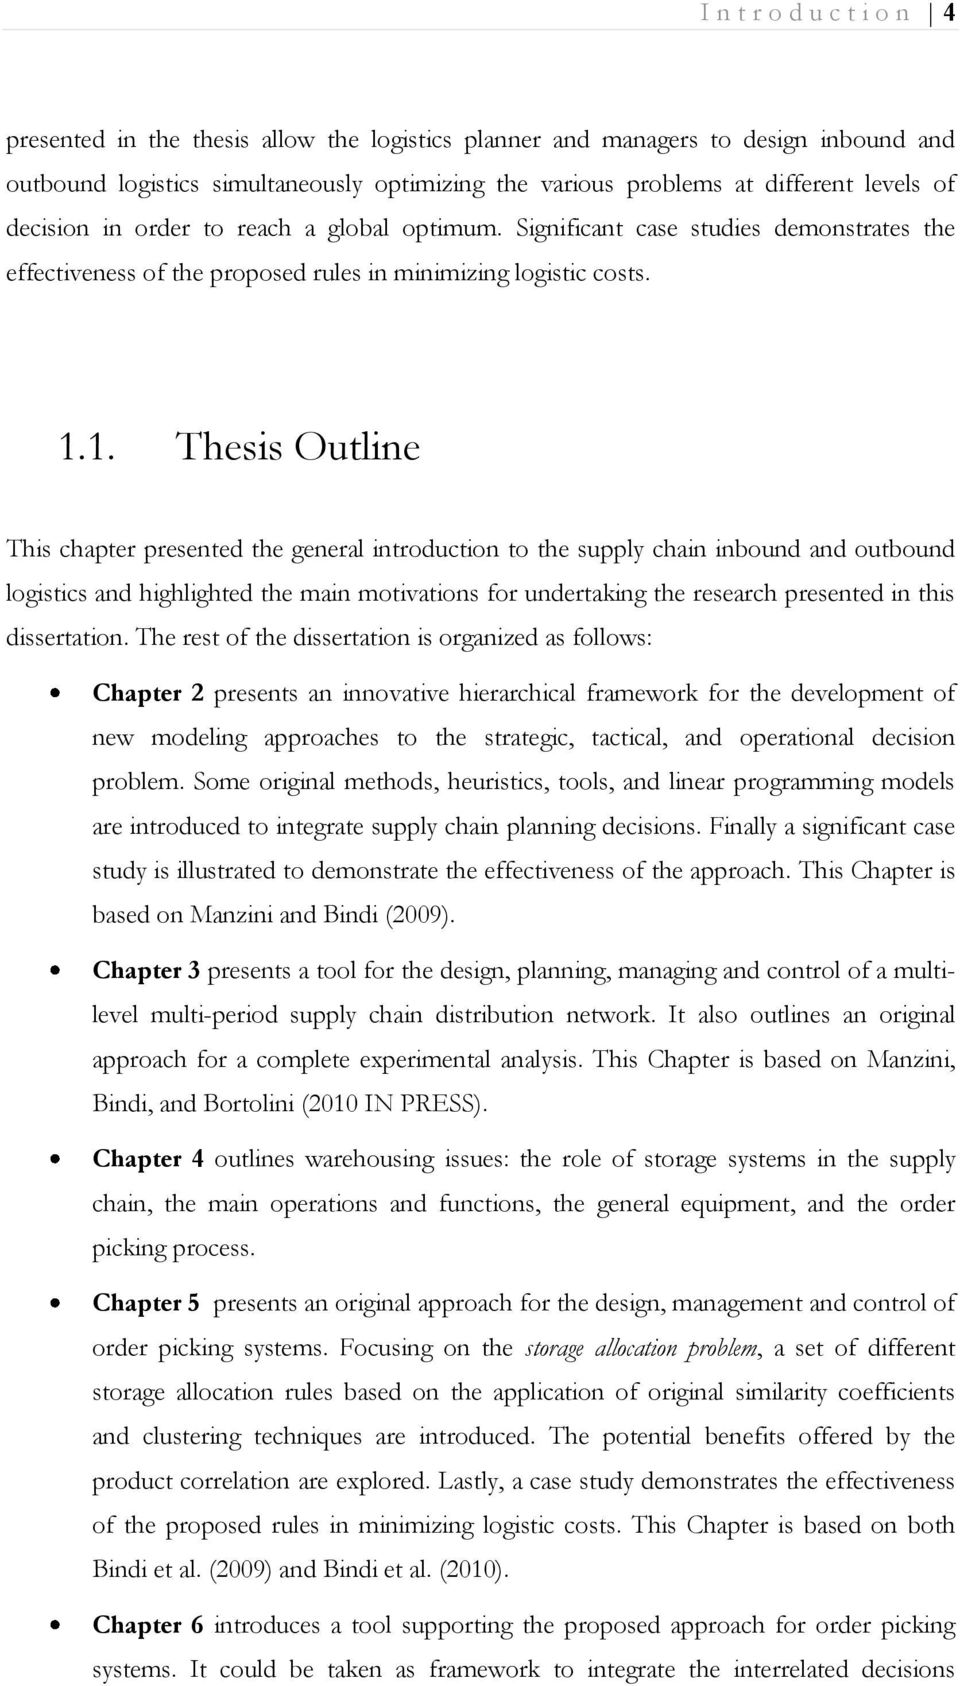 1. Thesis Outline This chapter presented the general introduction to the supply chain inbound and outbound logistics and highlighted the main motivations for undertaking the research presented in